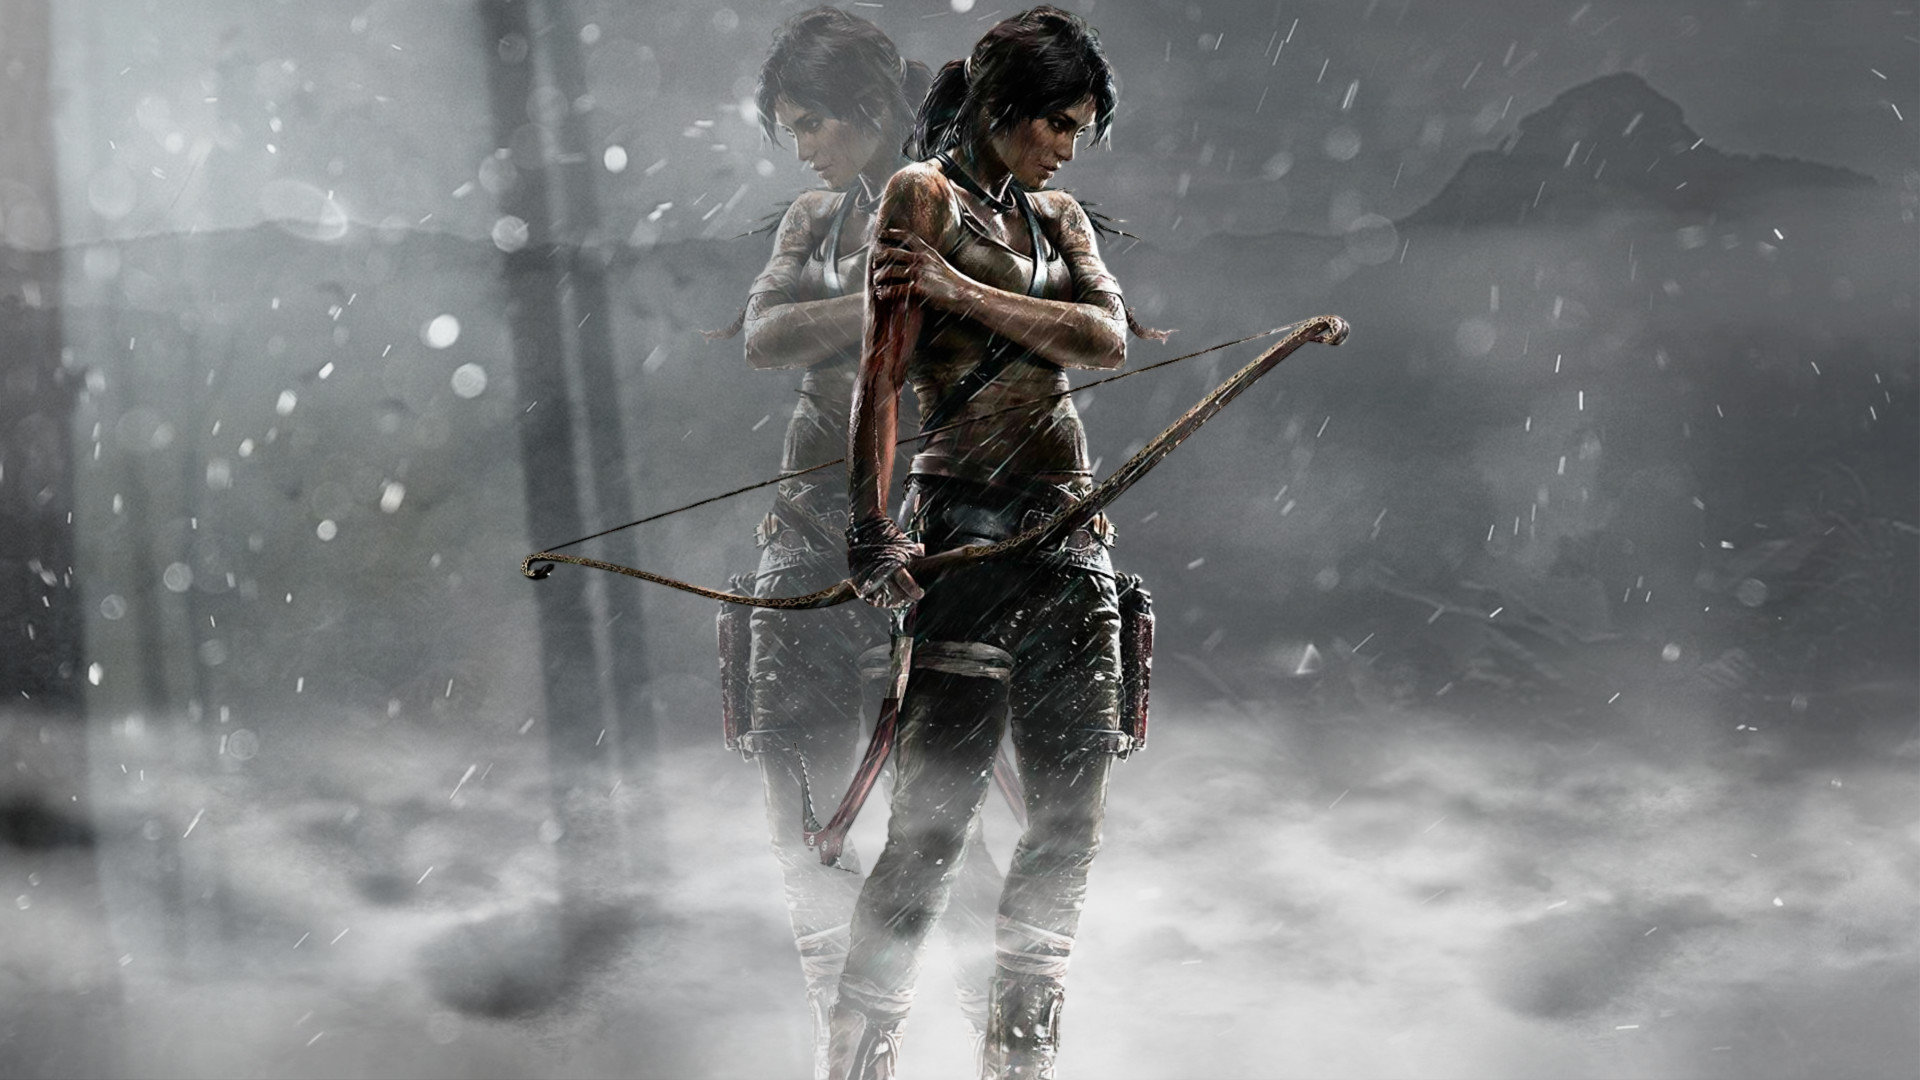 Tomb Raider 2013 Wallpapers Hd For Desktop Backgrounds